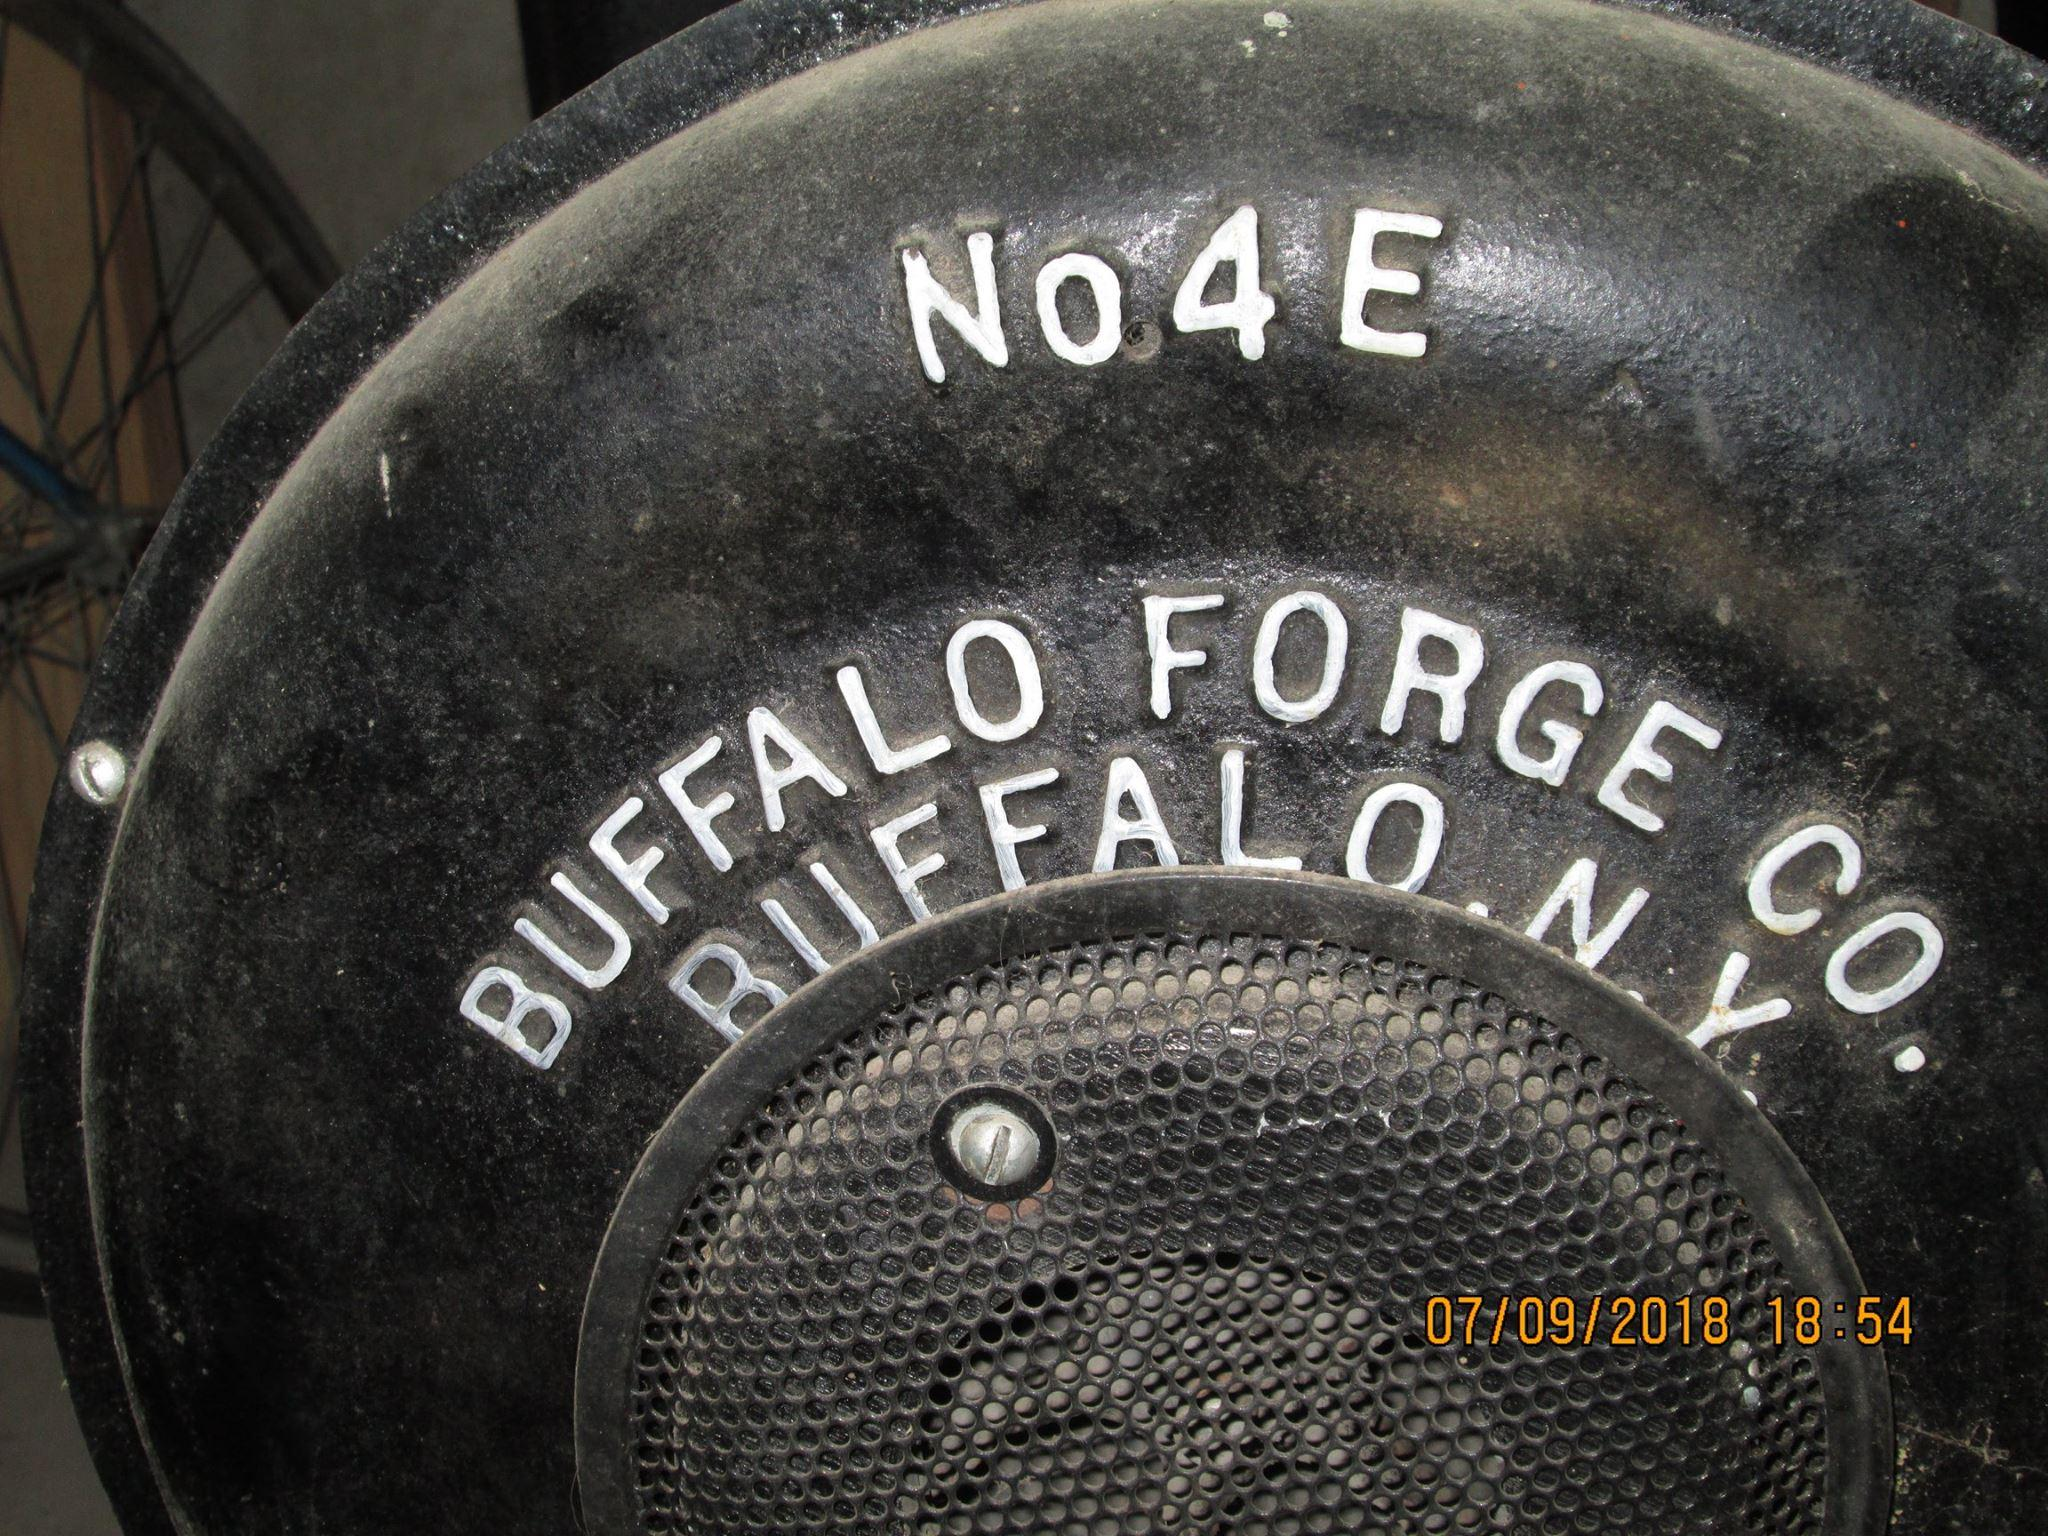 Buffalo NO4E what do I have - Bellows, Blowers - I Forge Iron